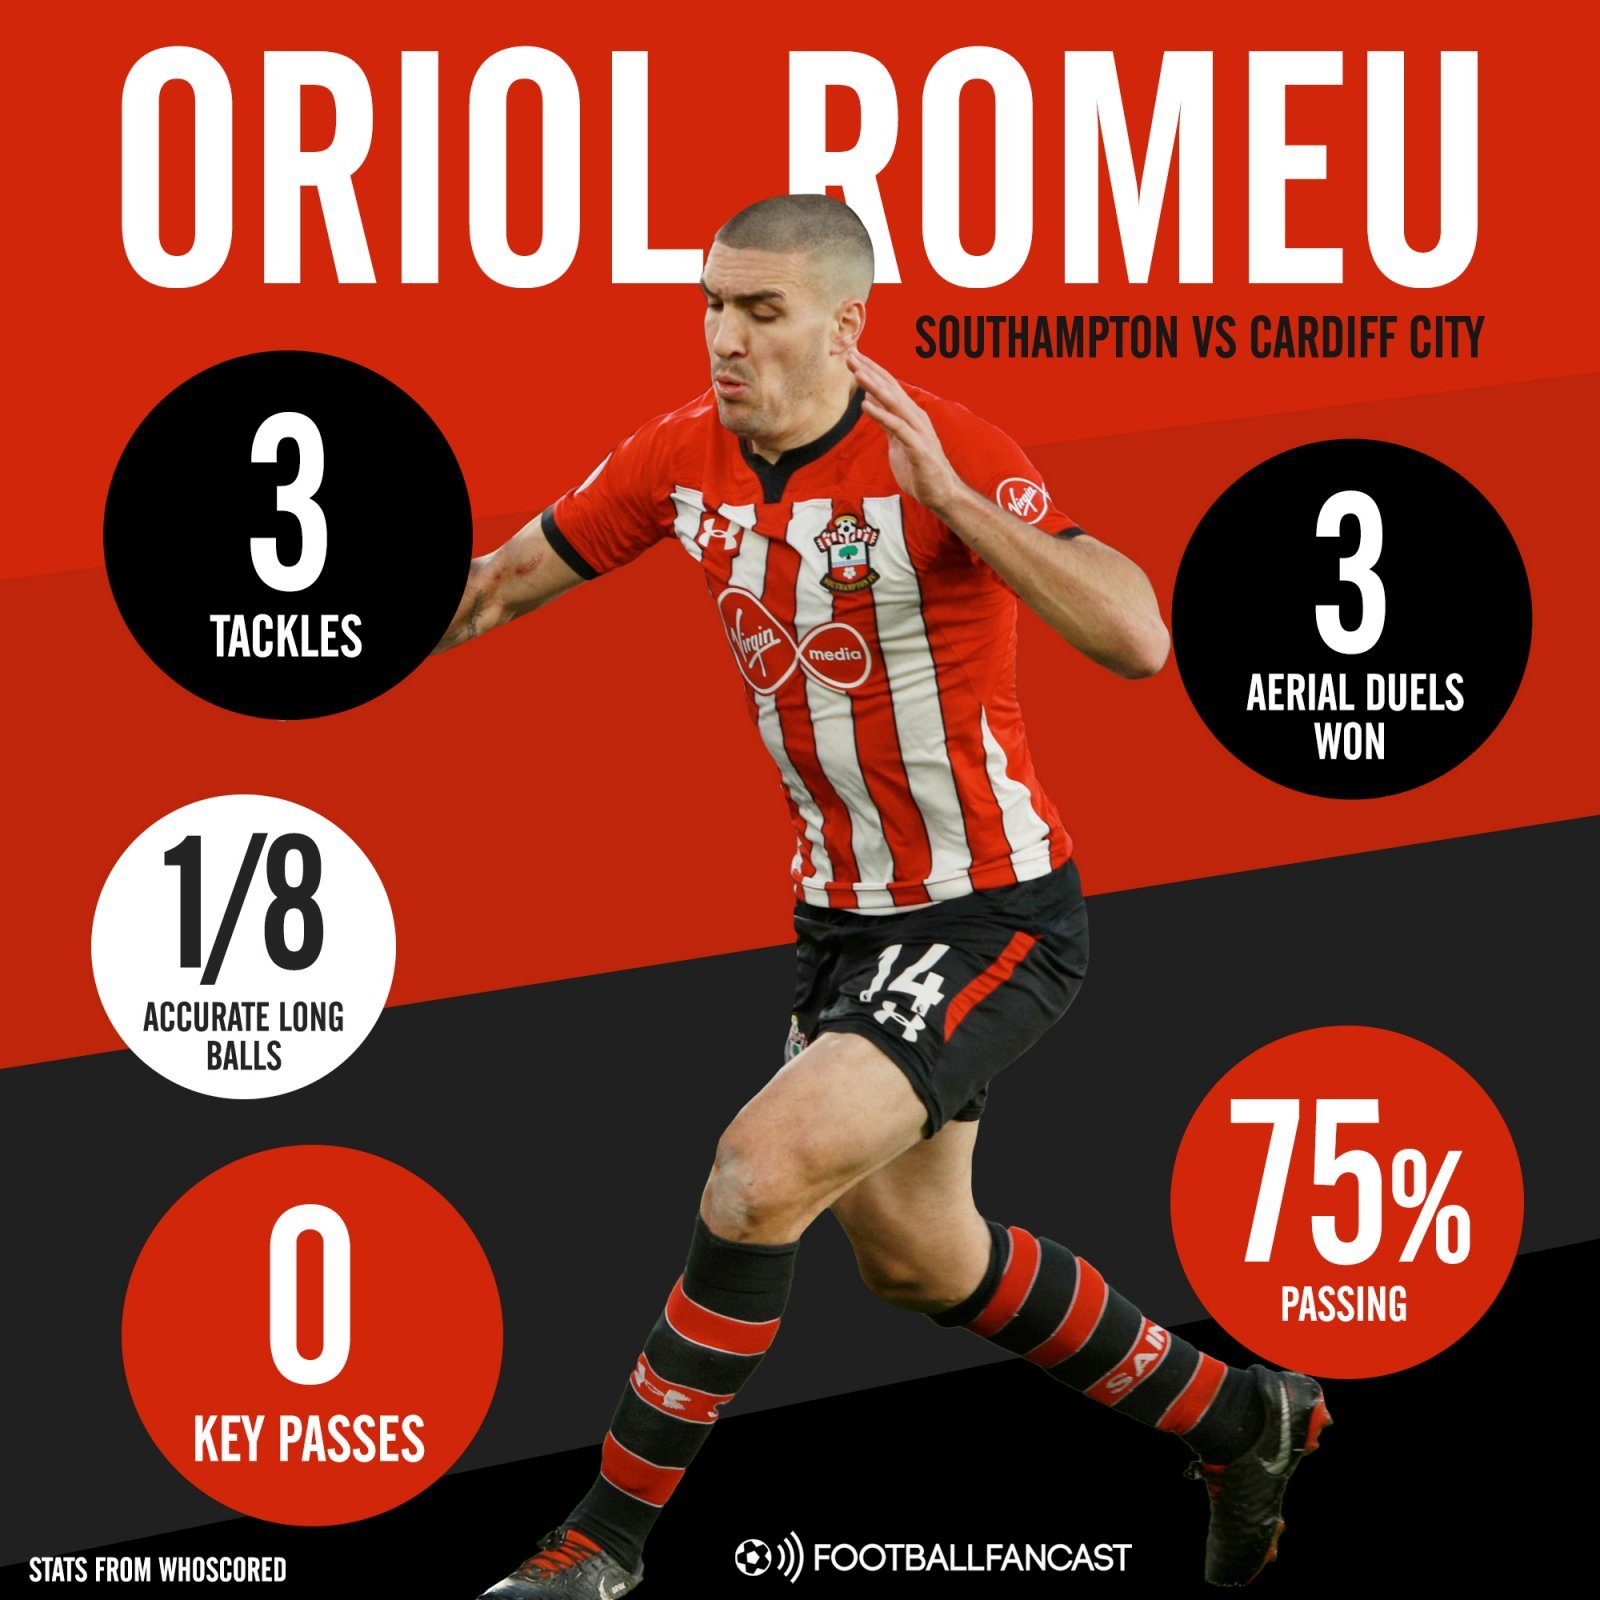 Southampton midfielder Oriol Romeus stats in defeat vs Cardiff City - Hasenhuttl must use Saturday as proof that 27 y/o Southampton man is useless in certain matches